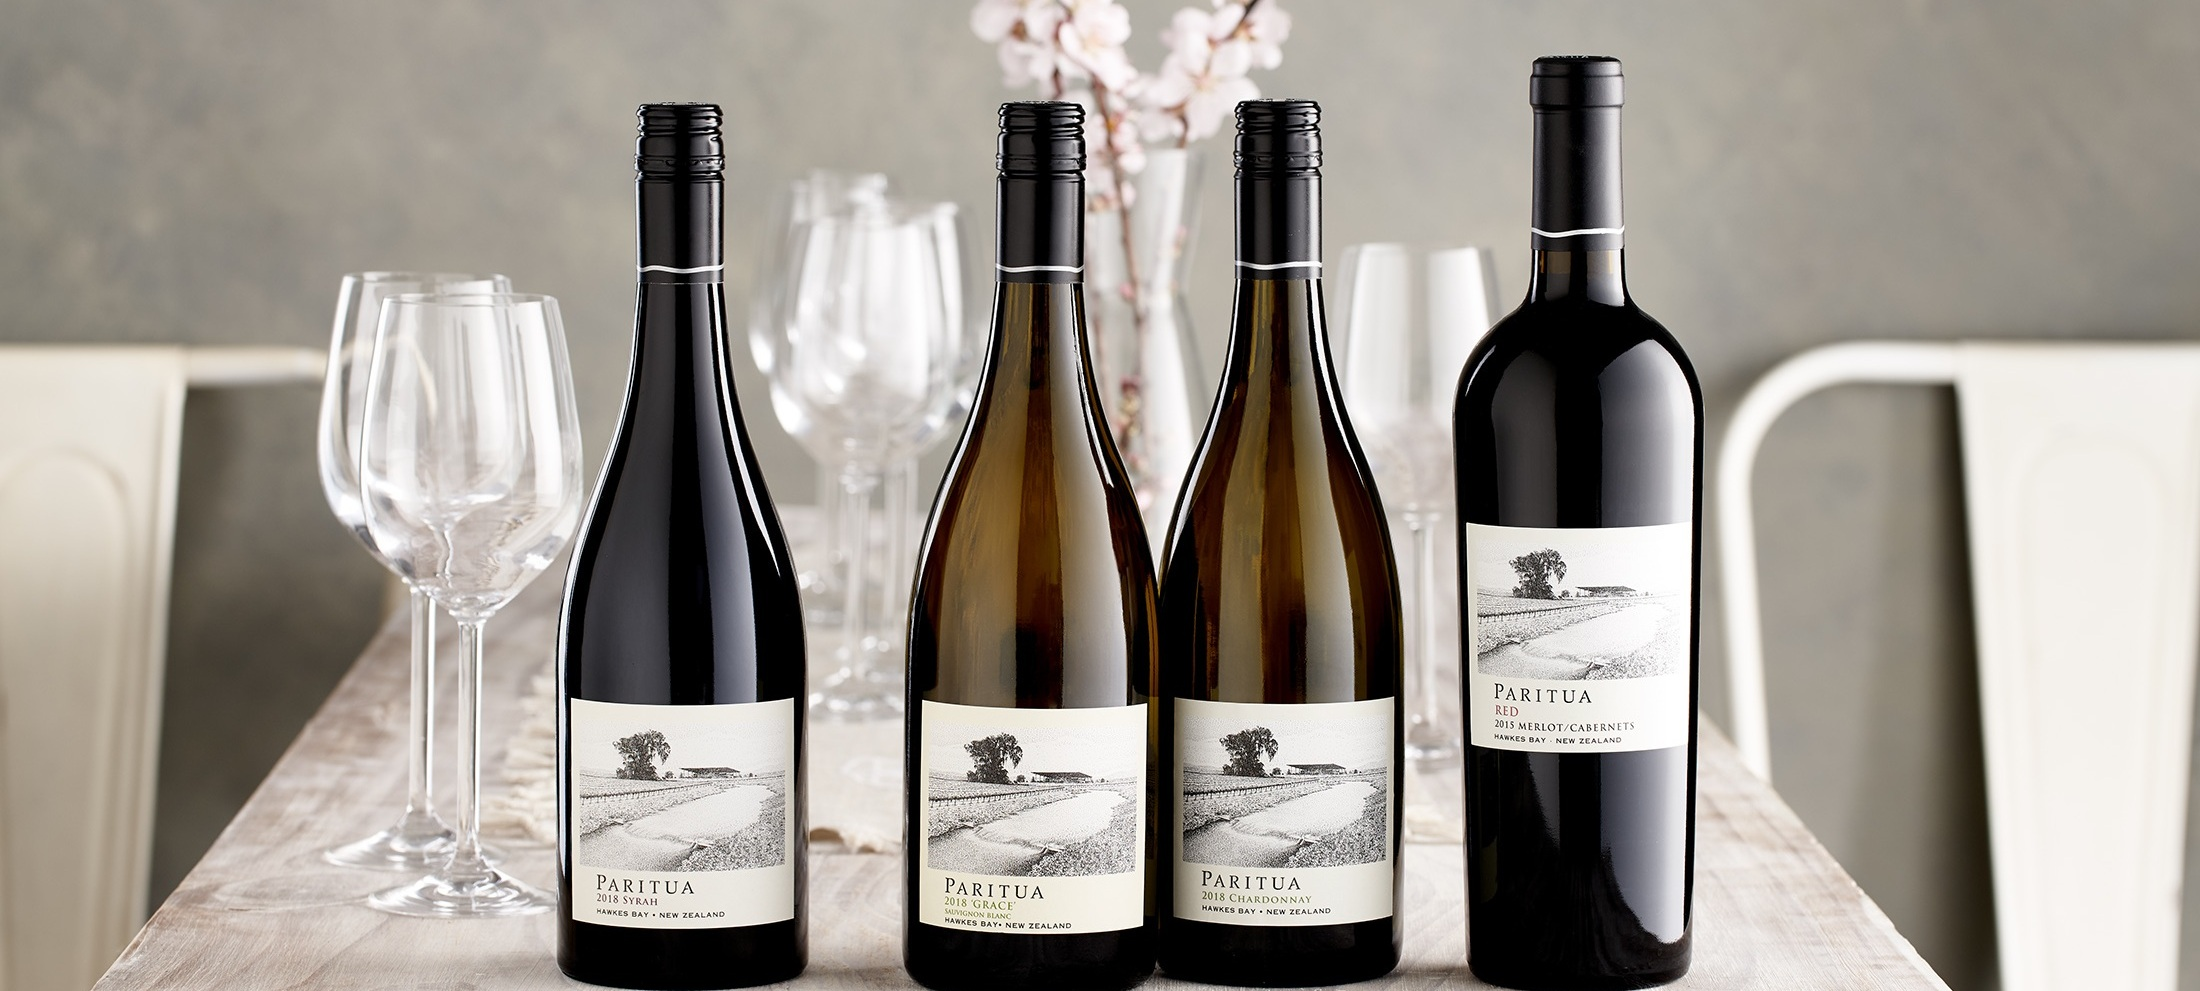 Please click the image to enter our shop and choose from our three ranges of wines